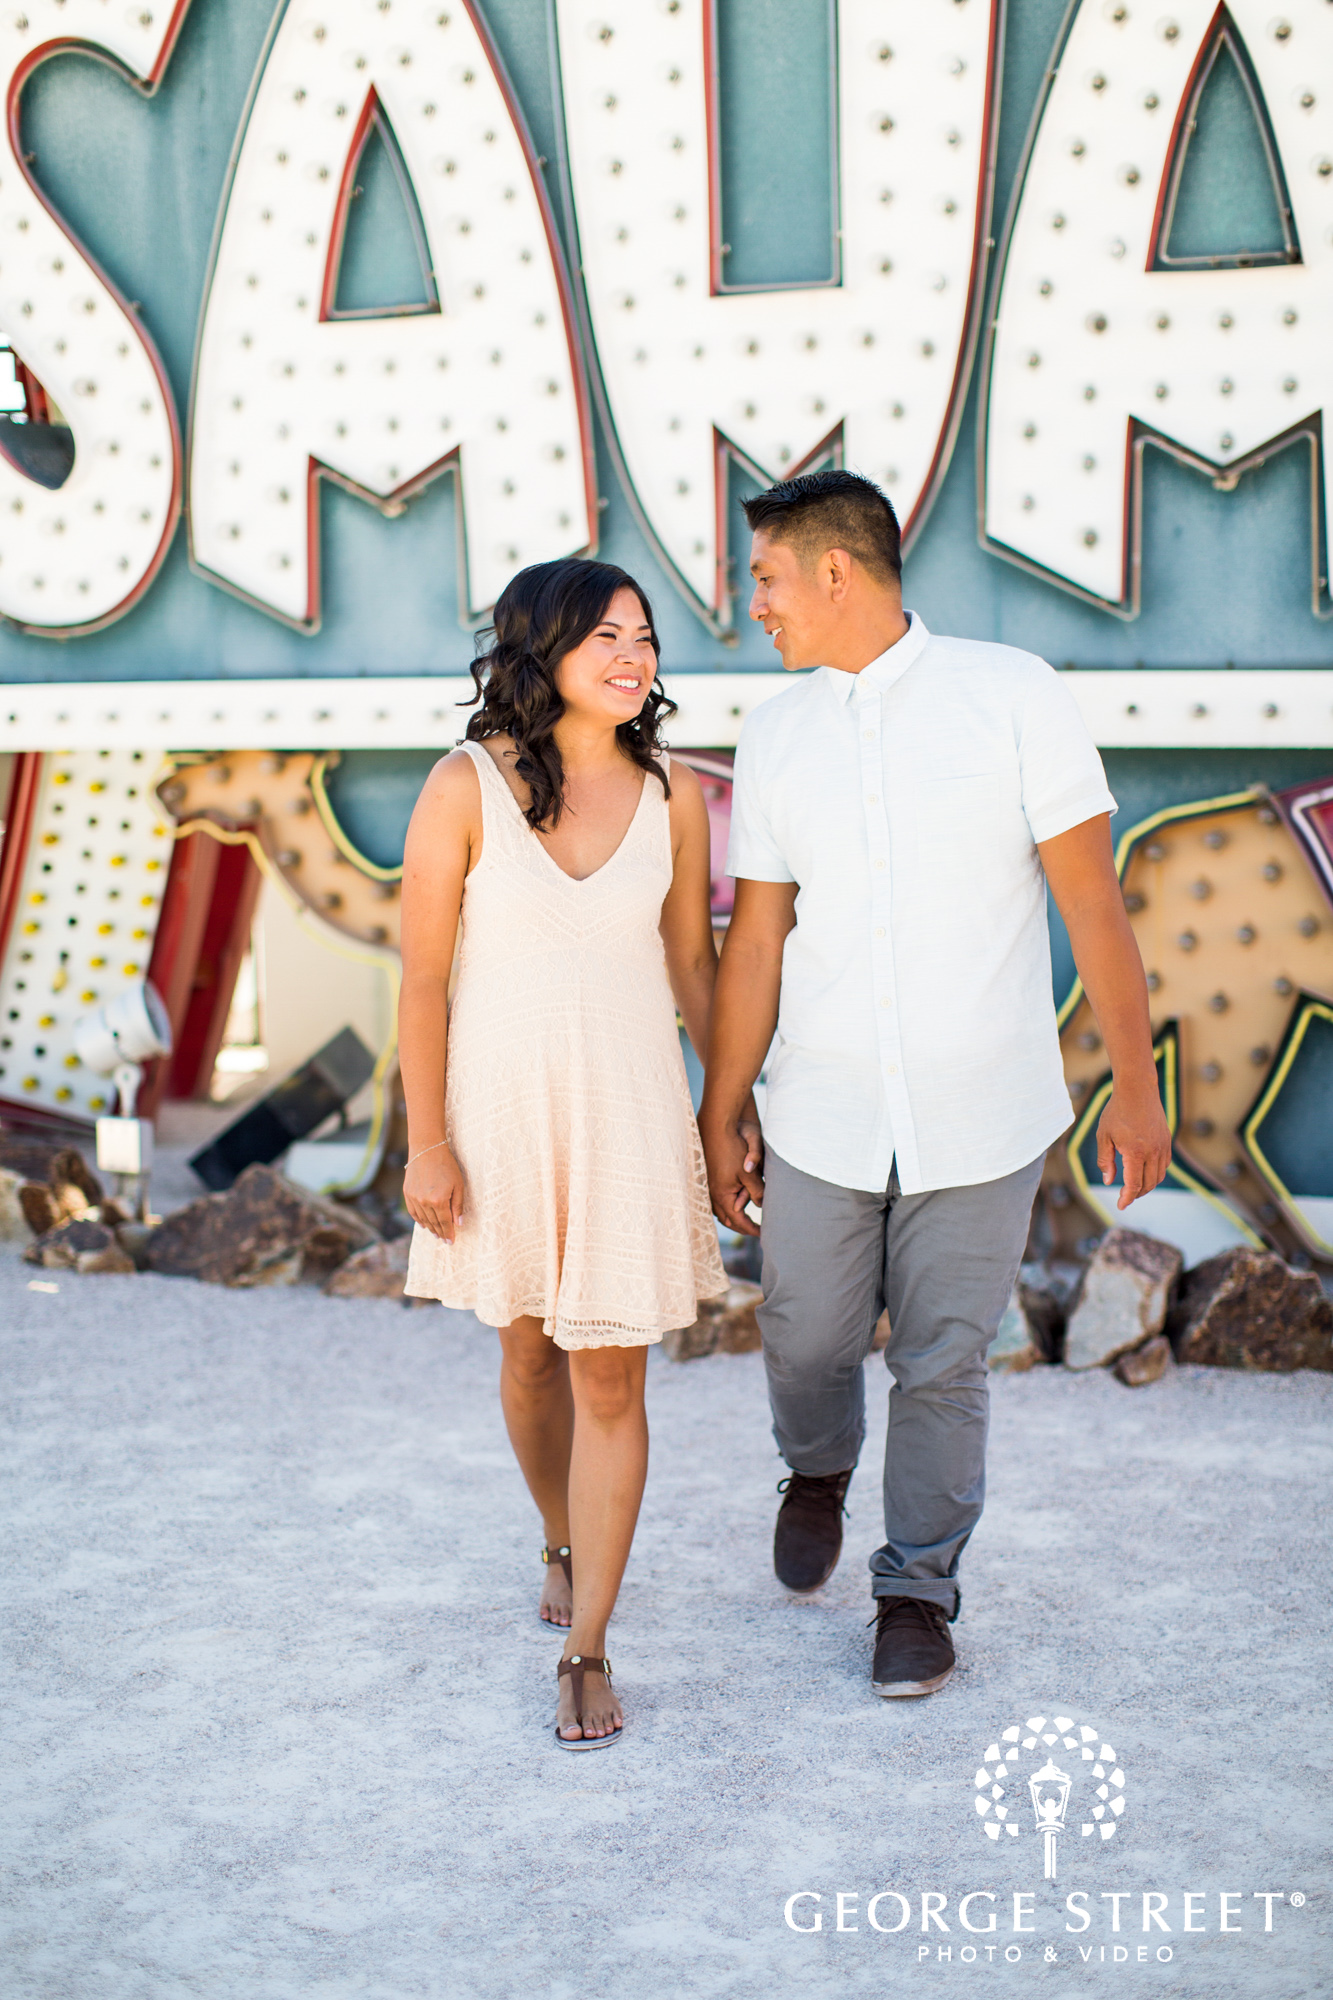 las vegas neon signs engagement photography 5